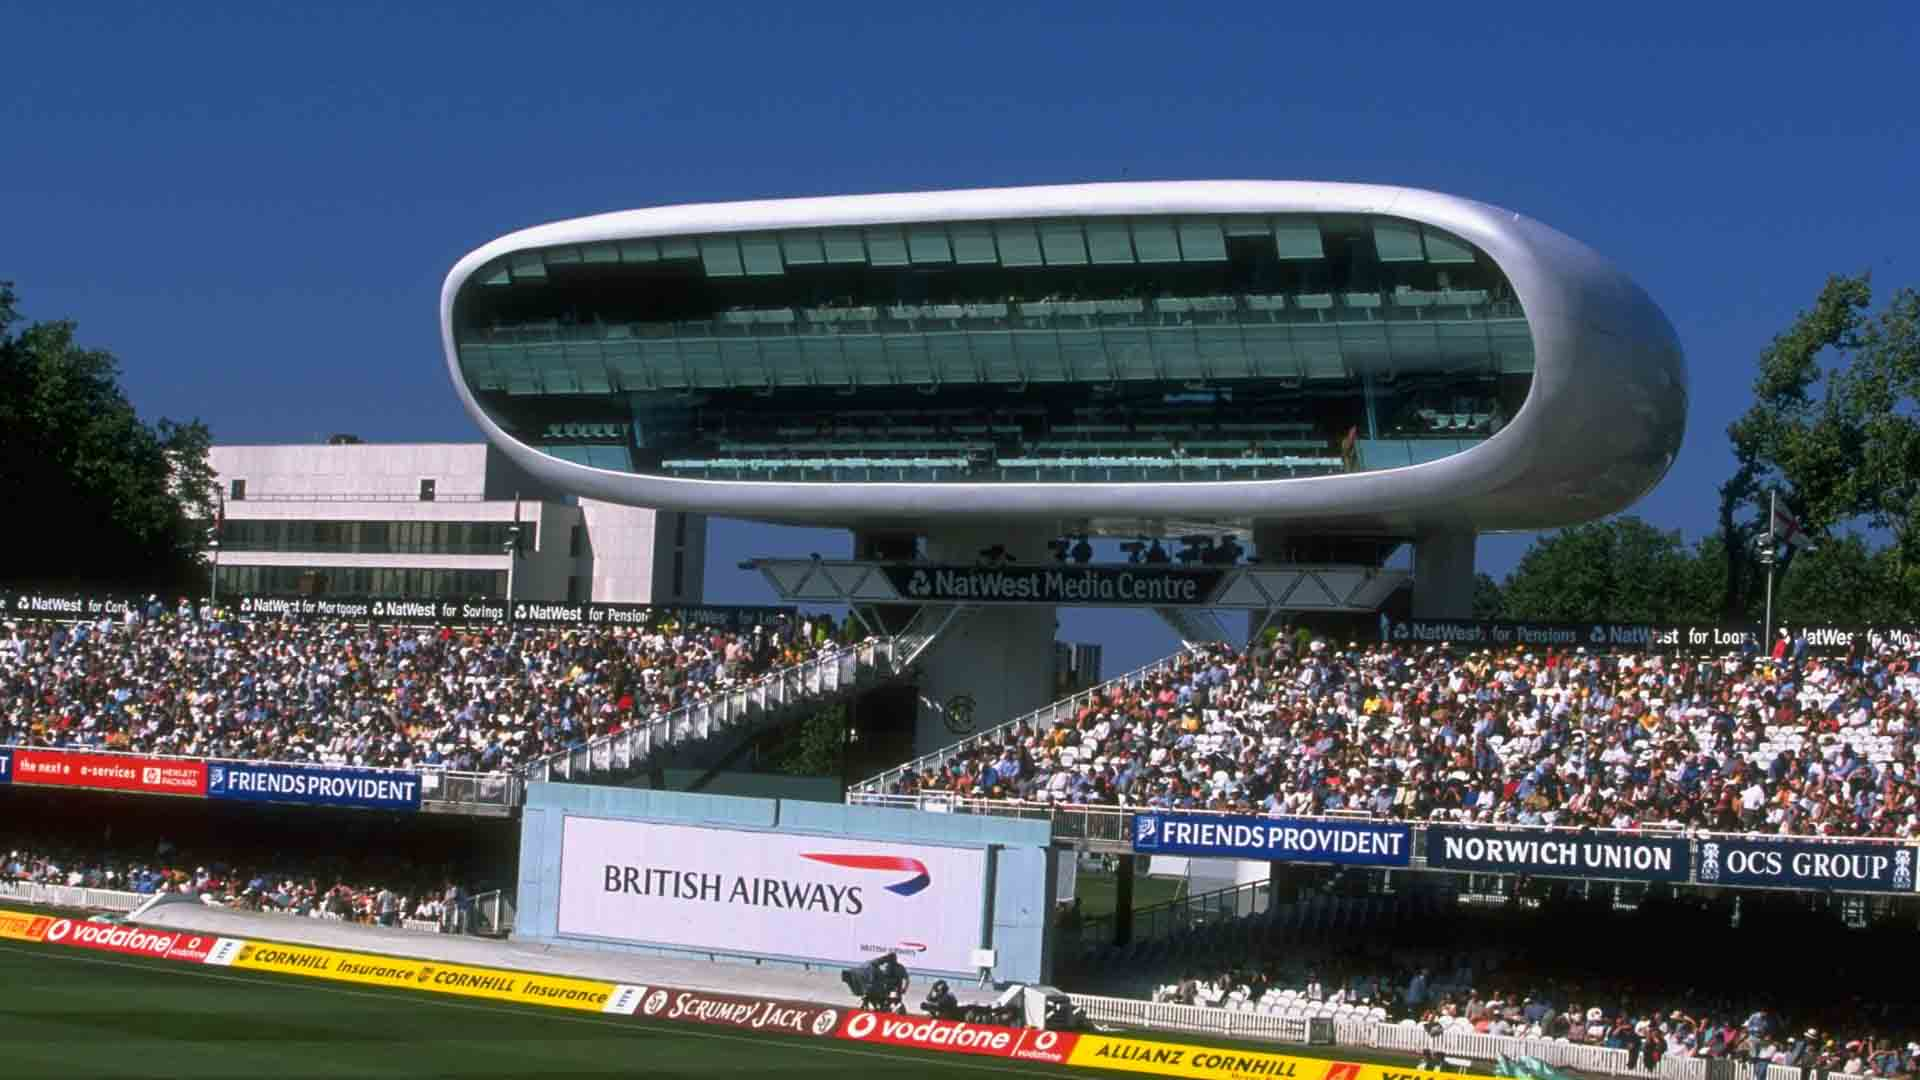 The Media Centre in 1999.